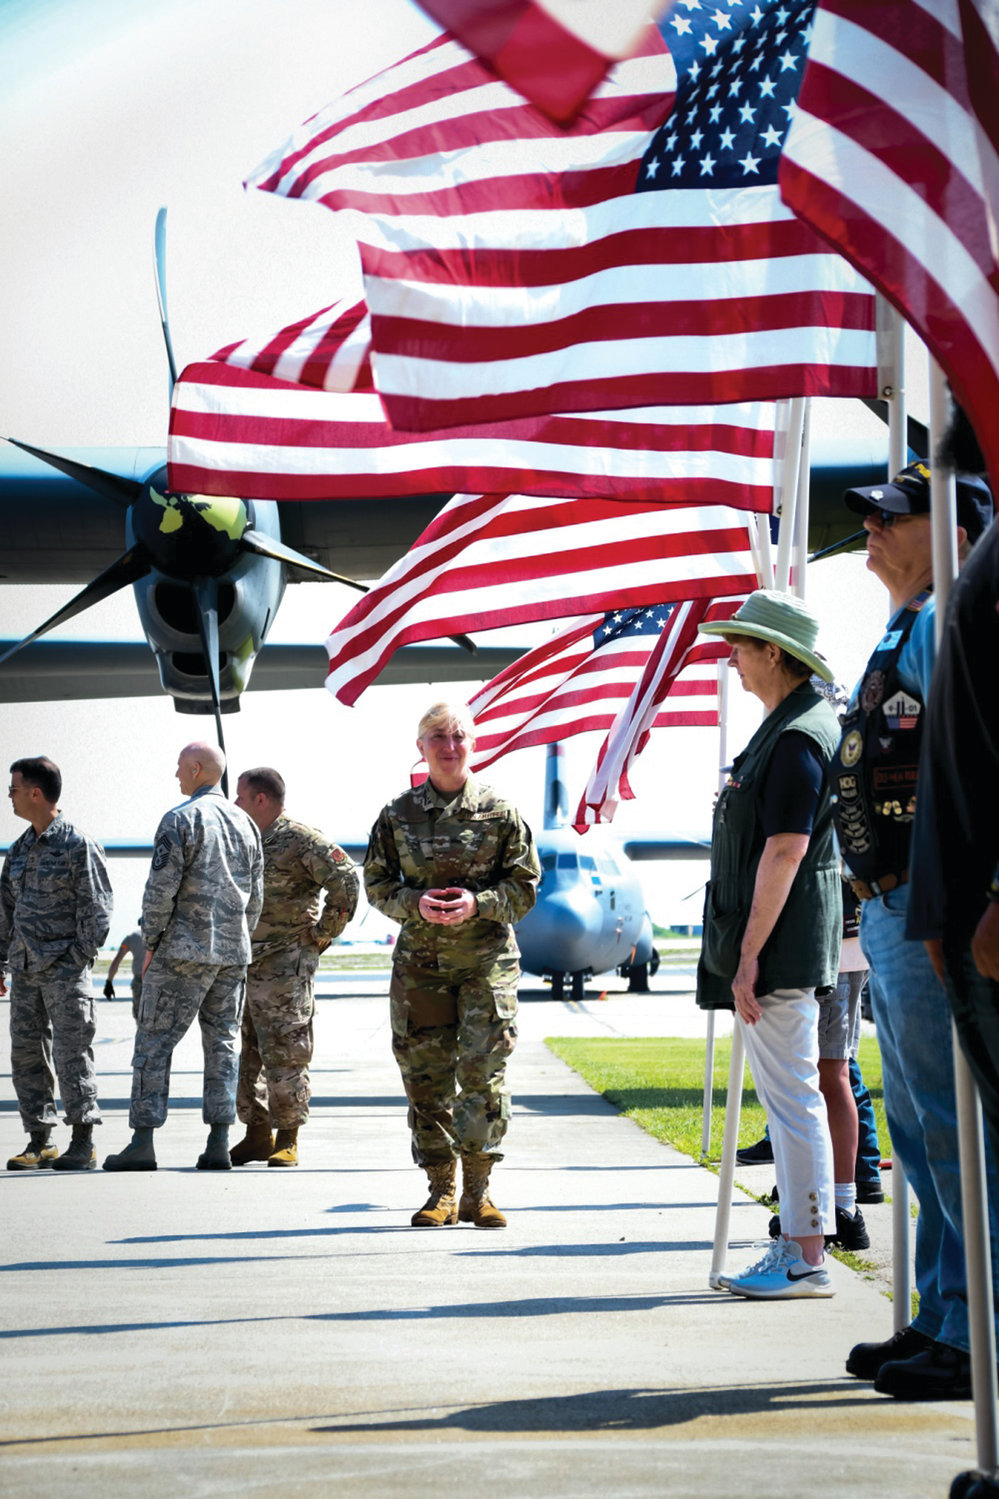 REASON TO SMILE: Brig. Gen. Kimberly A. Baumann, assistant adjutant general of the Rhode Island Air National Guard, welcomes home more than 100 Airmen from the 143d Airlift Wing on July 5 at Quonset.